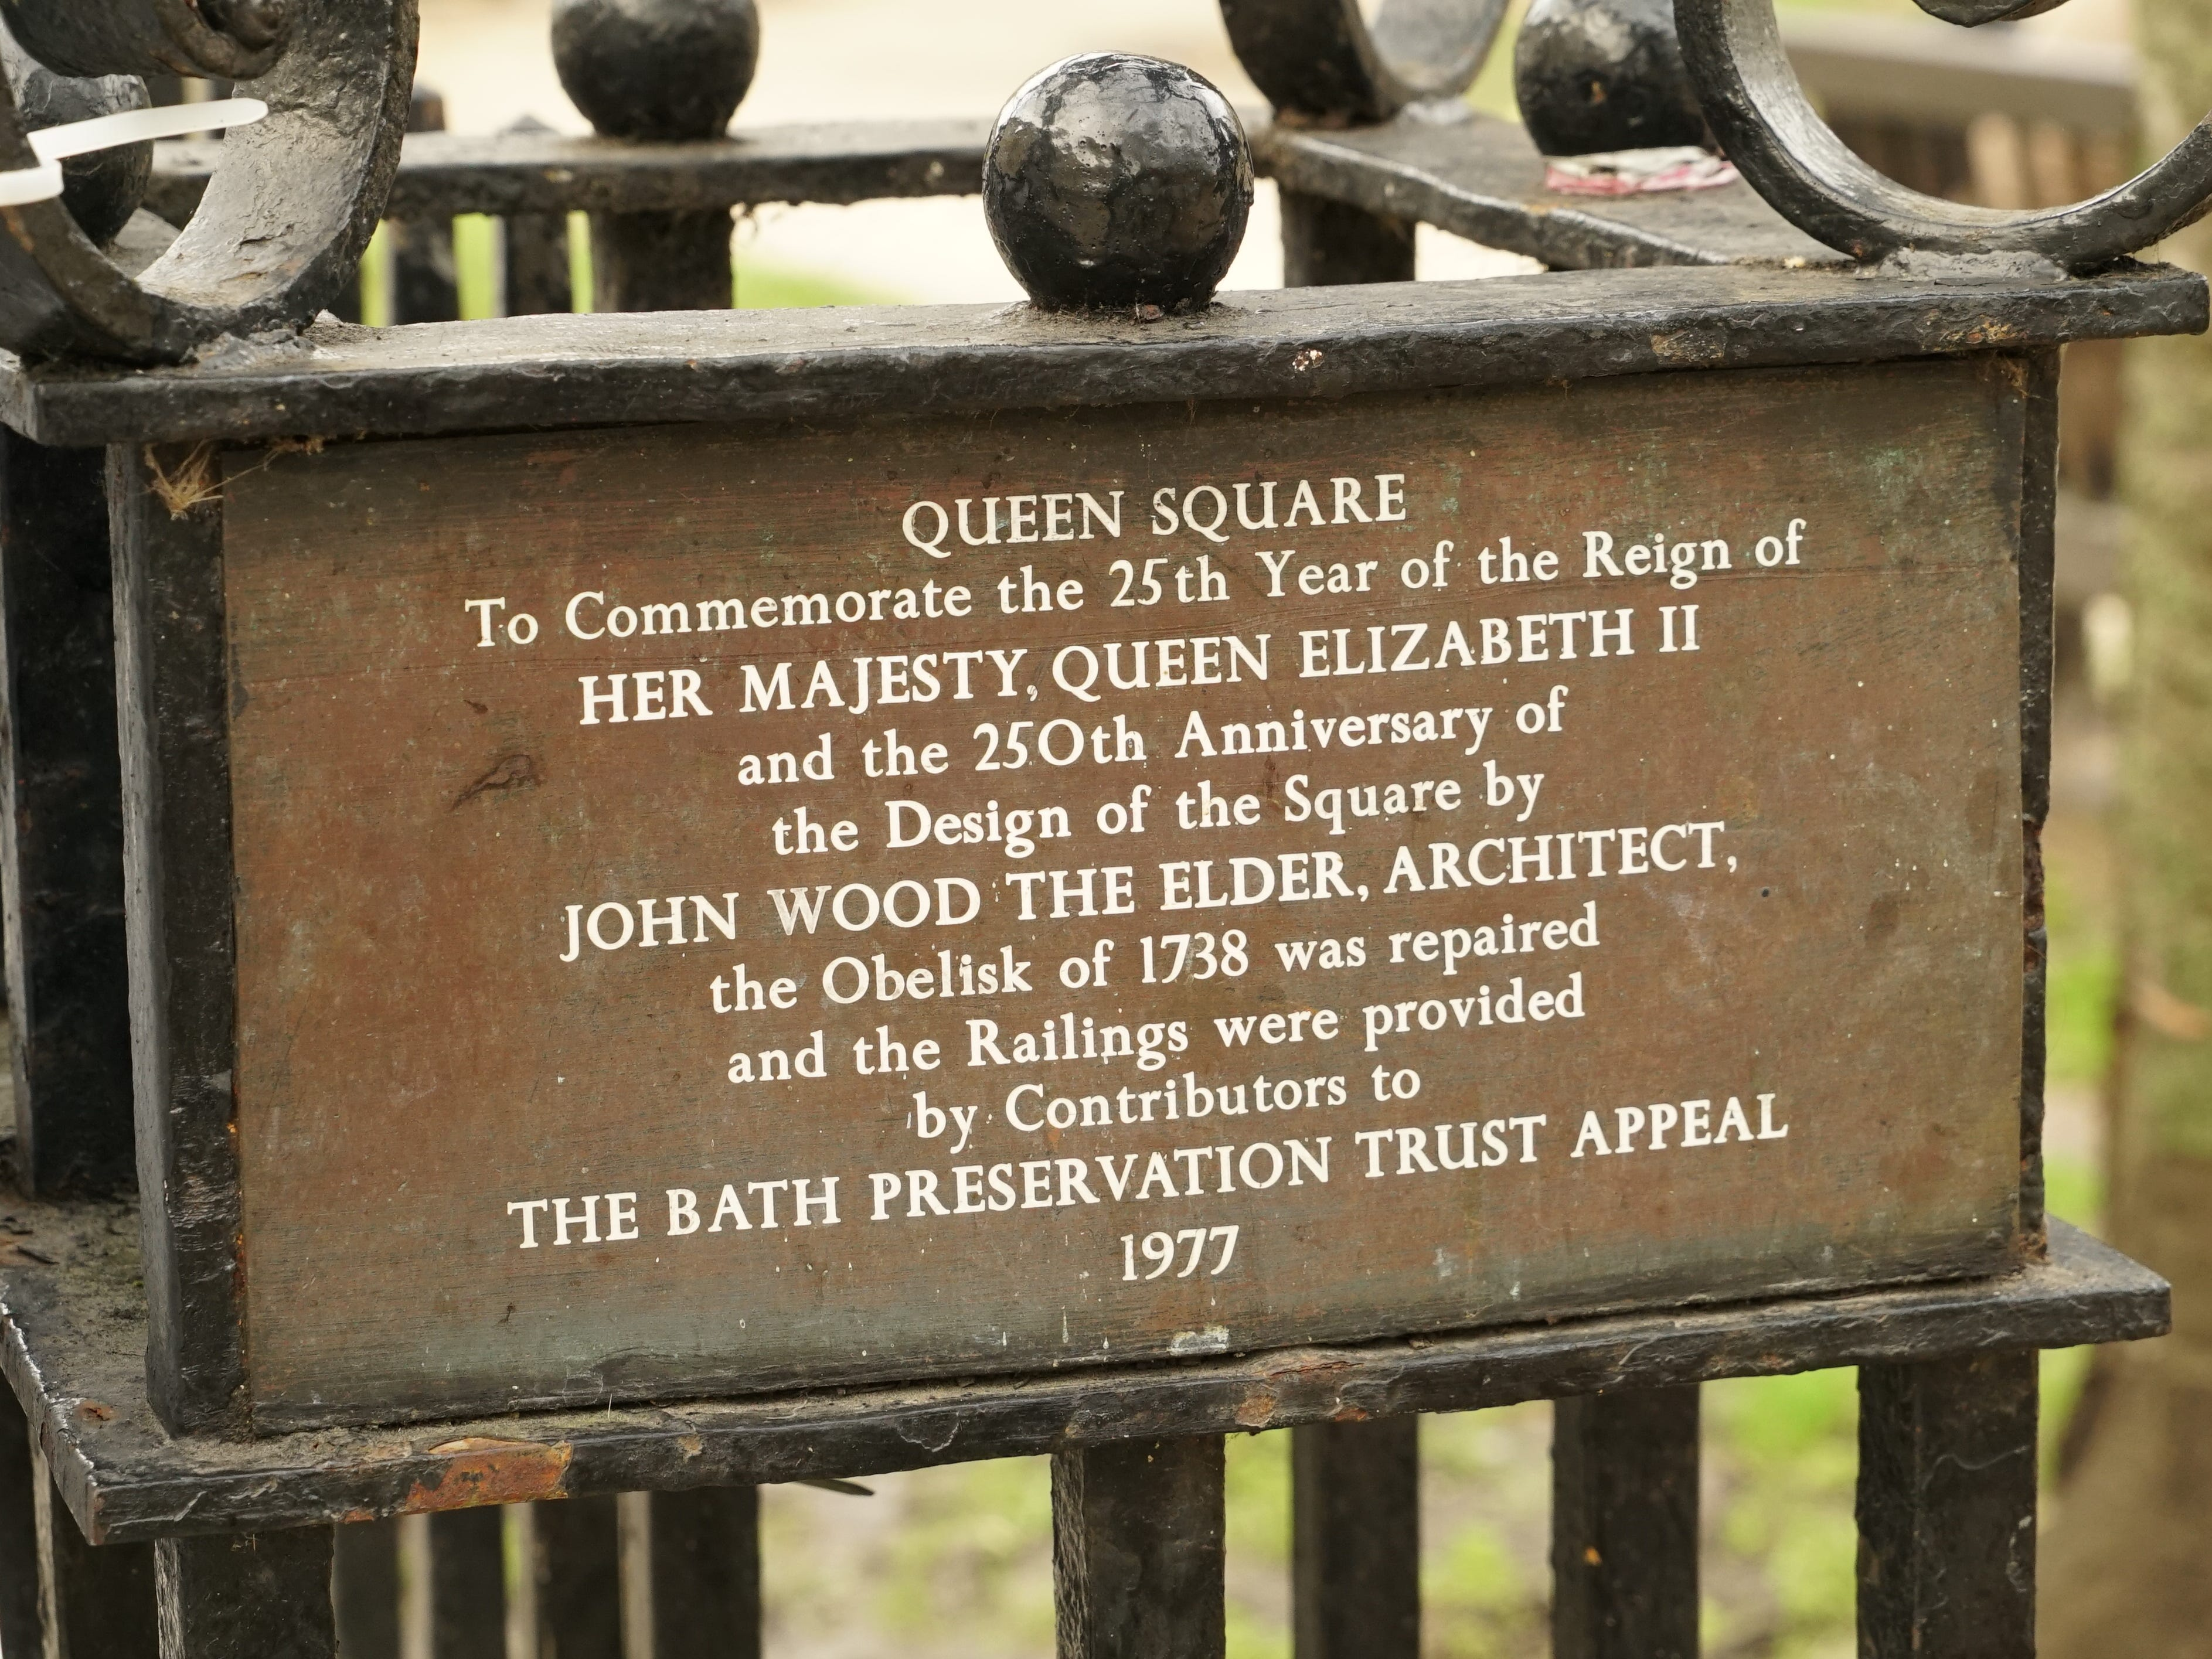 A plaque at Queen Square.